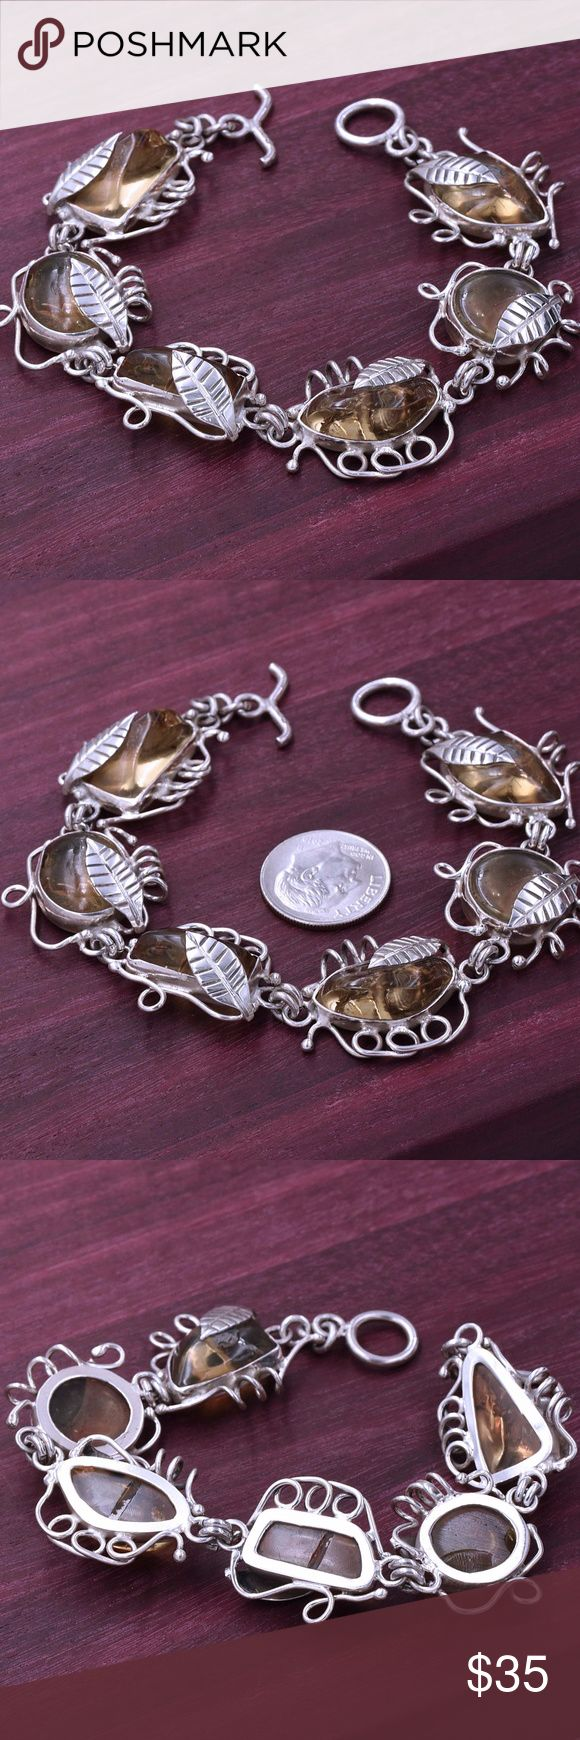 "‼️Clearance‼️Fall 925 Amber Bracelet Stamped ""925"". Sterling silver is an alloy of silver containing 92.5% by mass of silver and 7.5% by mass of other metal, like copper. The sterling silver standard has a minimum millesimal fineness of 925. All my jewelry is solid sterling silver. I do not plate. Hand crafted in Taxco, Mexico. Will ship within 2 days Jewelry Bracelets"